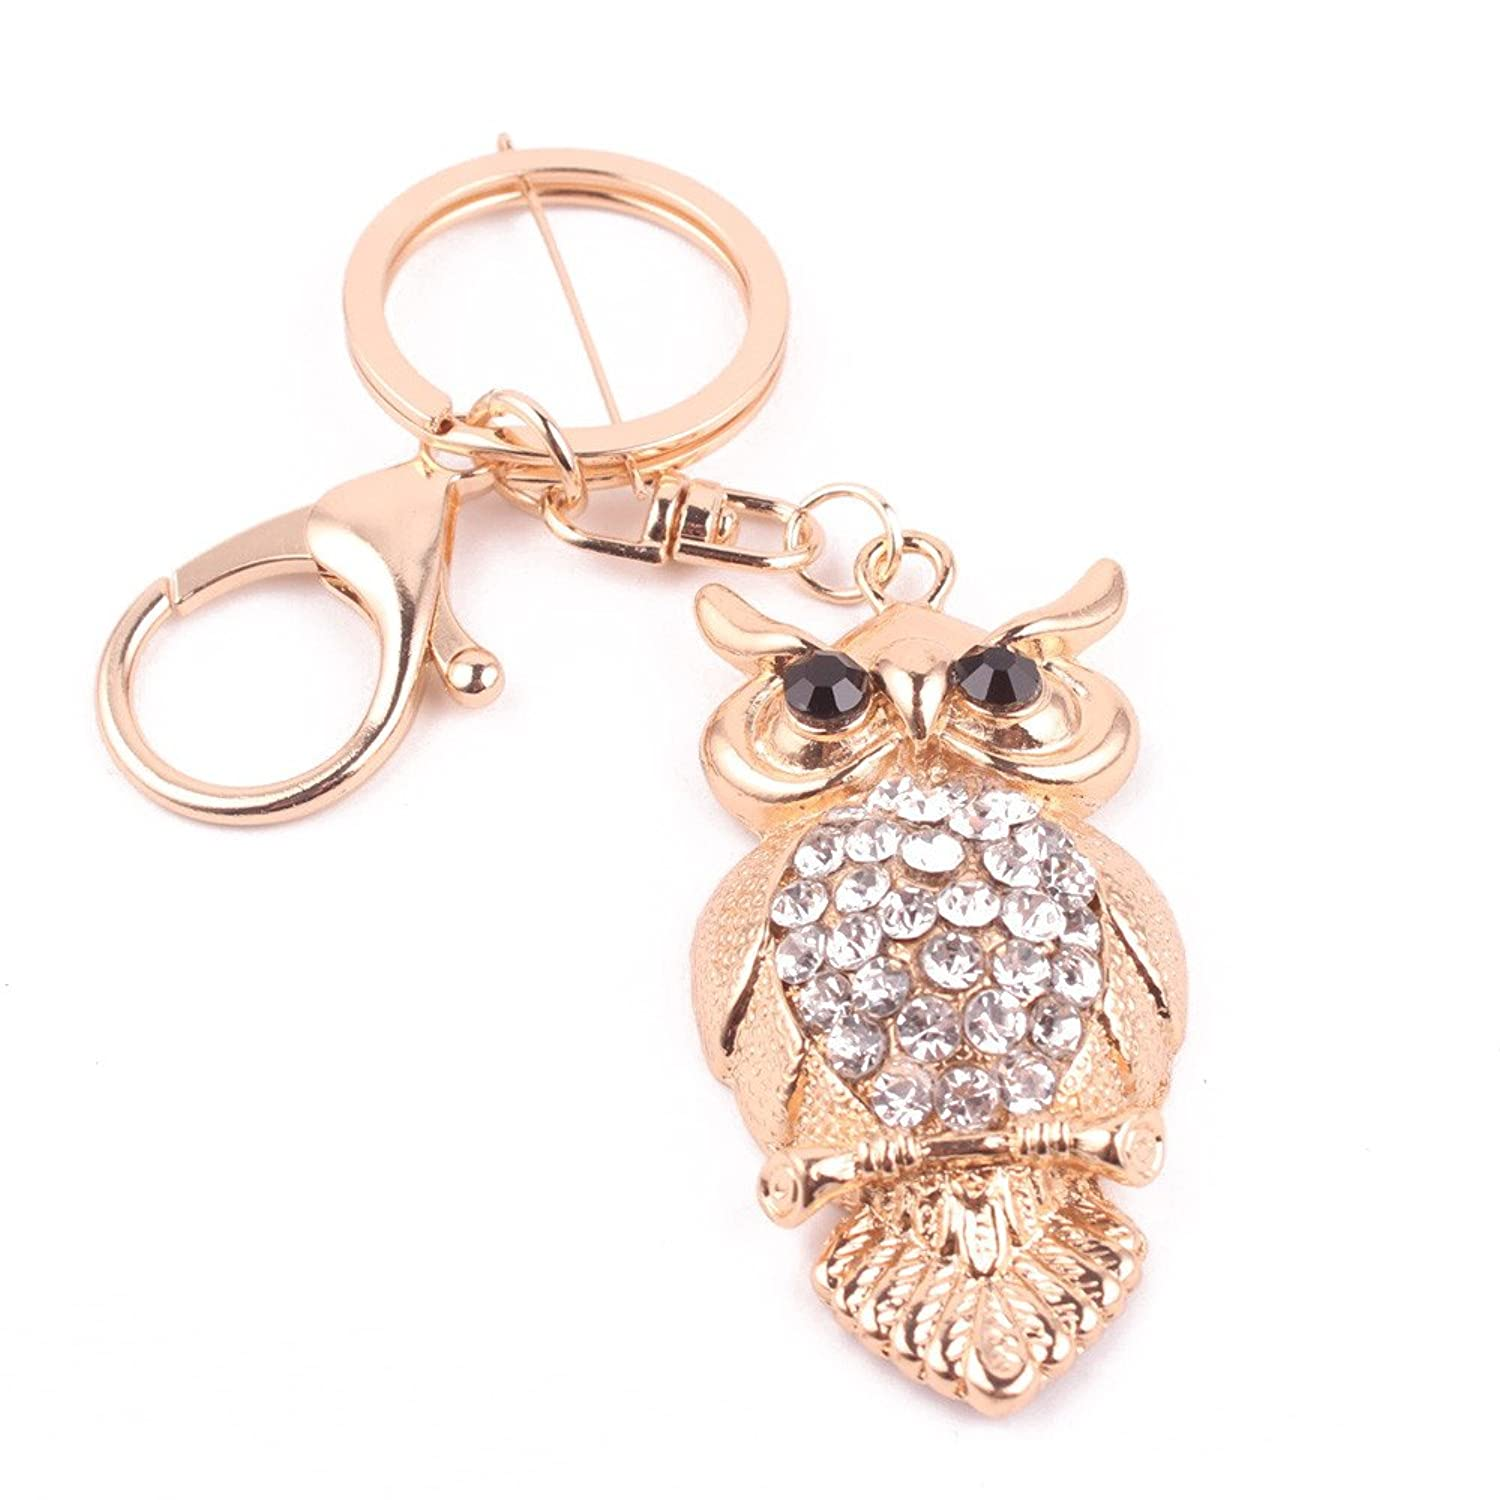 Fashion Rhinestone Owl Girl Women Keychain Bag Pendant Chic Car Key Chain Ring Holder Jewelry Key Ring Pendant Jewelry^